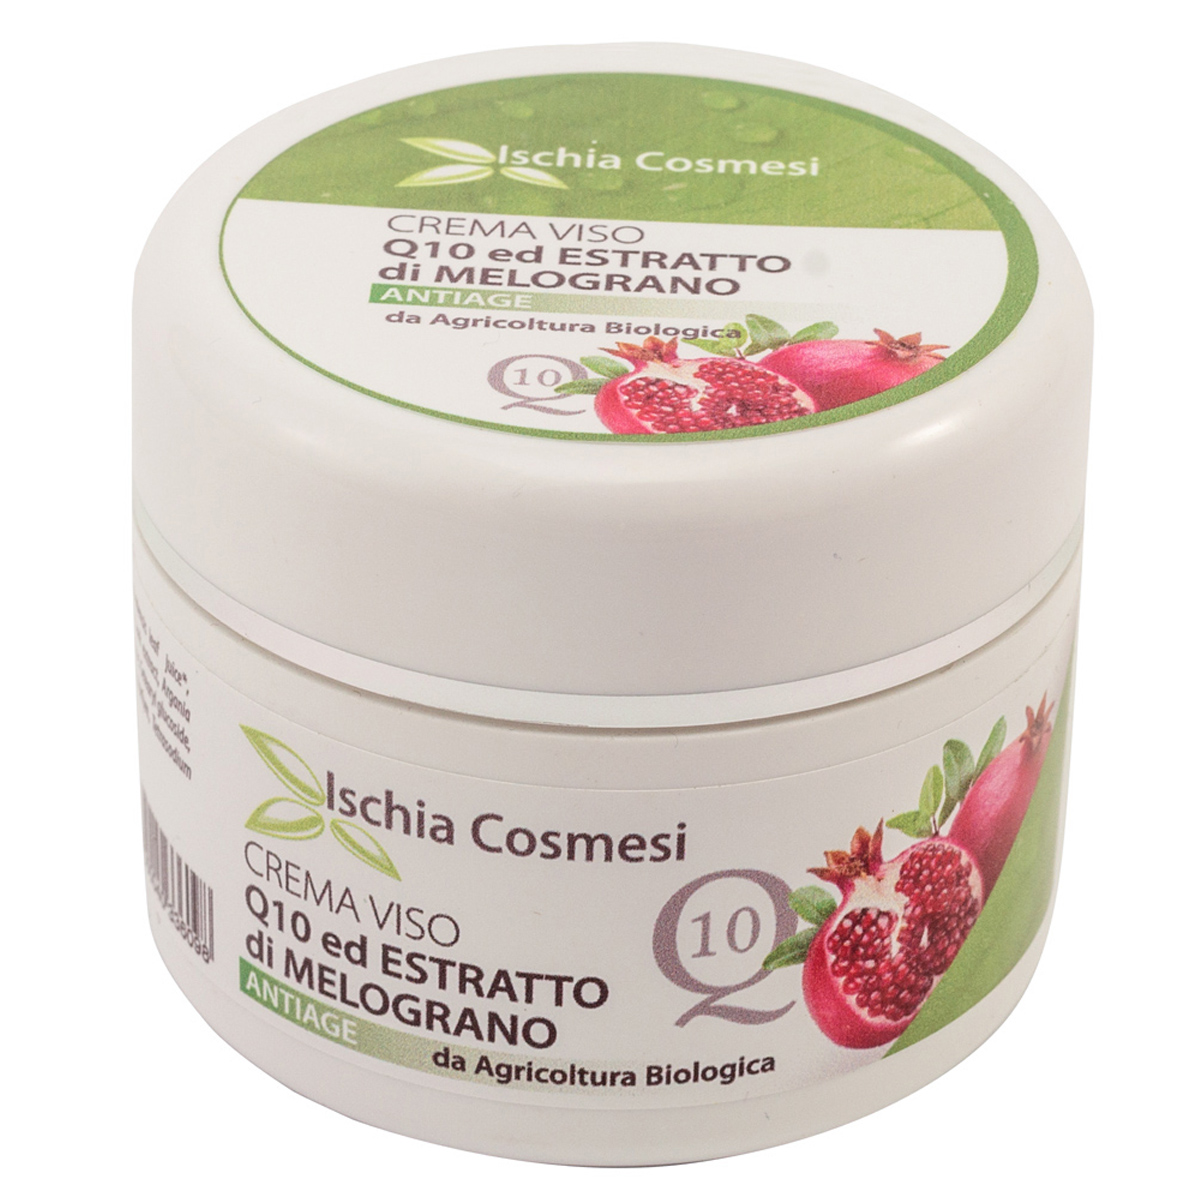 Crema Viso Anti-age Q10 ed Estratto di Melograno 100 ml